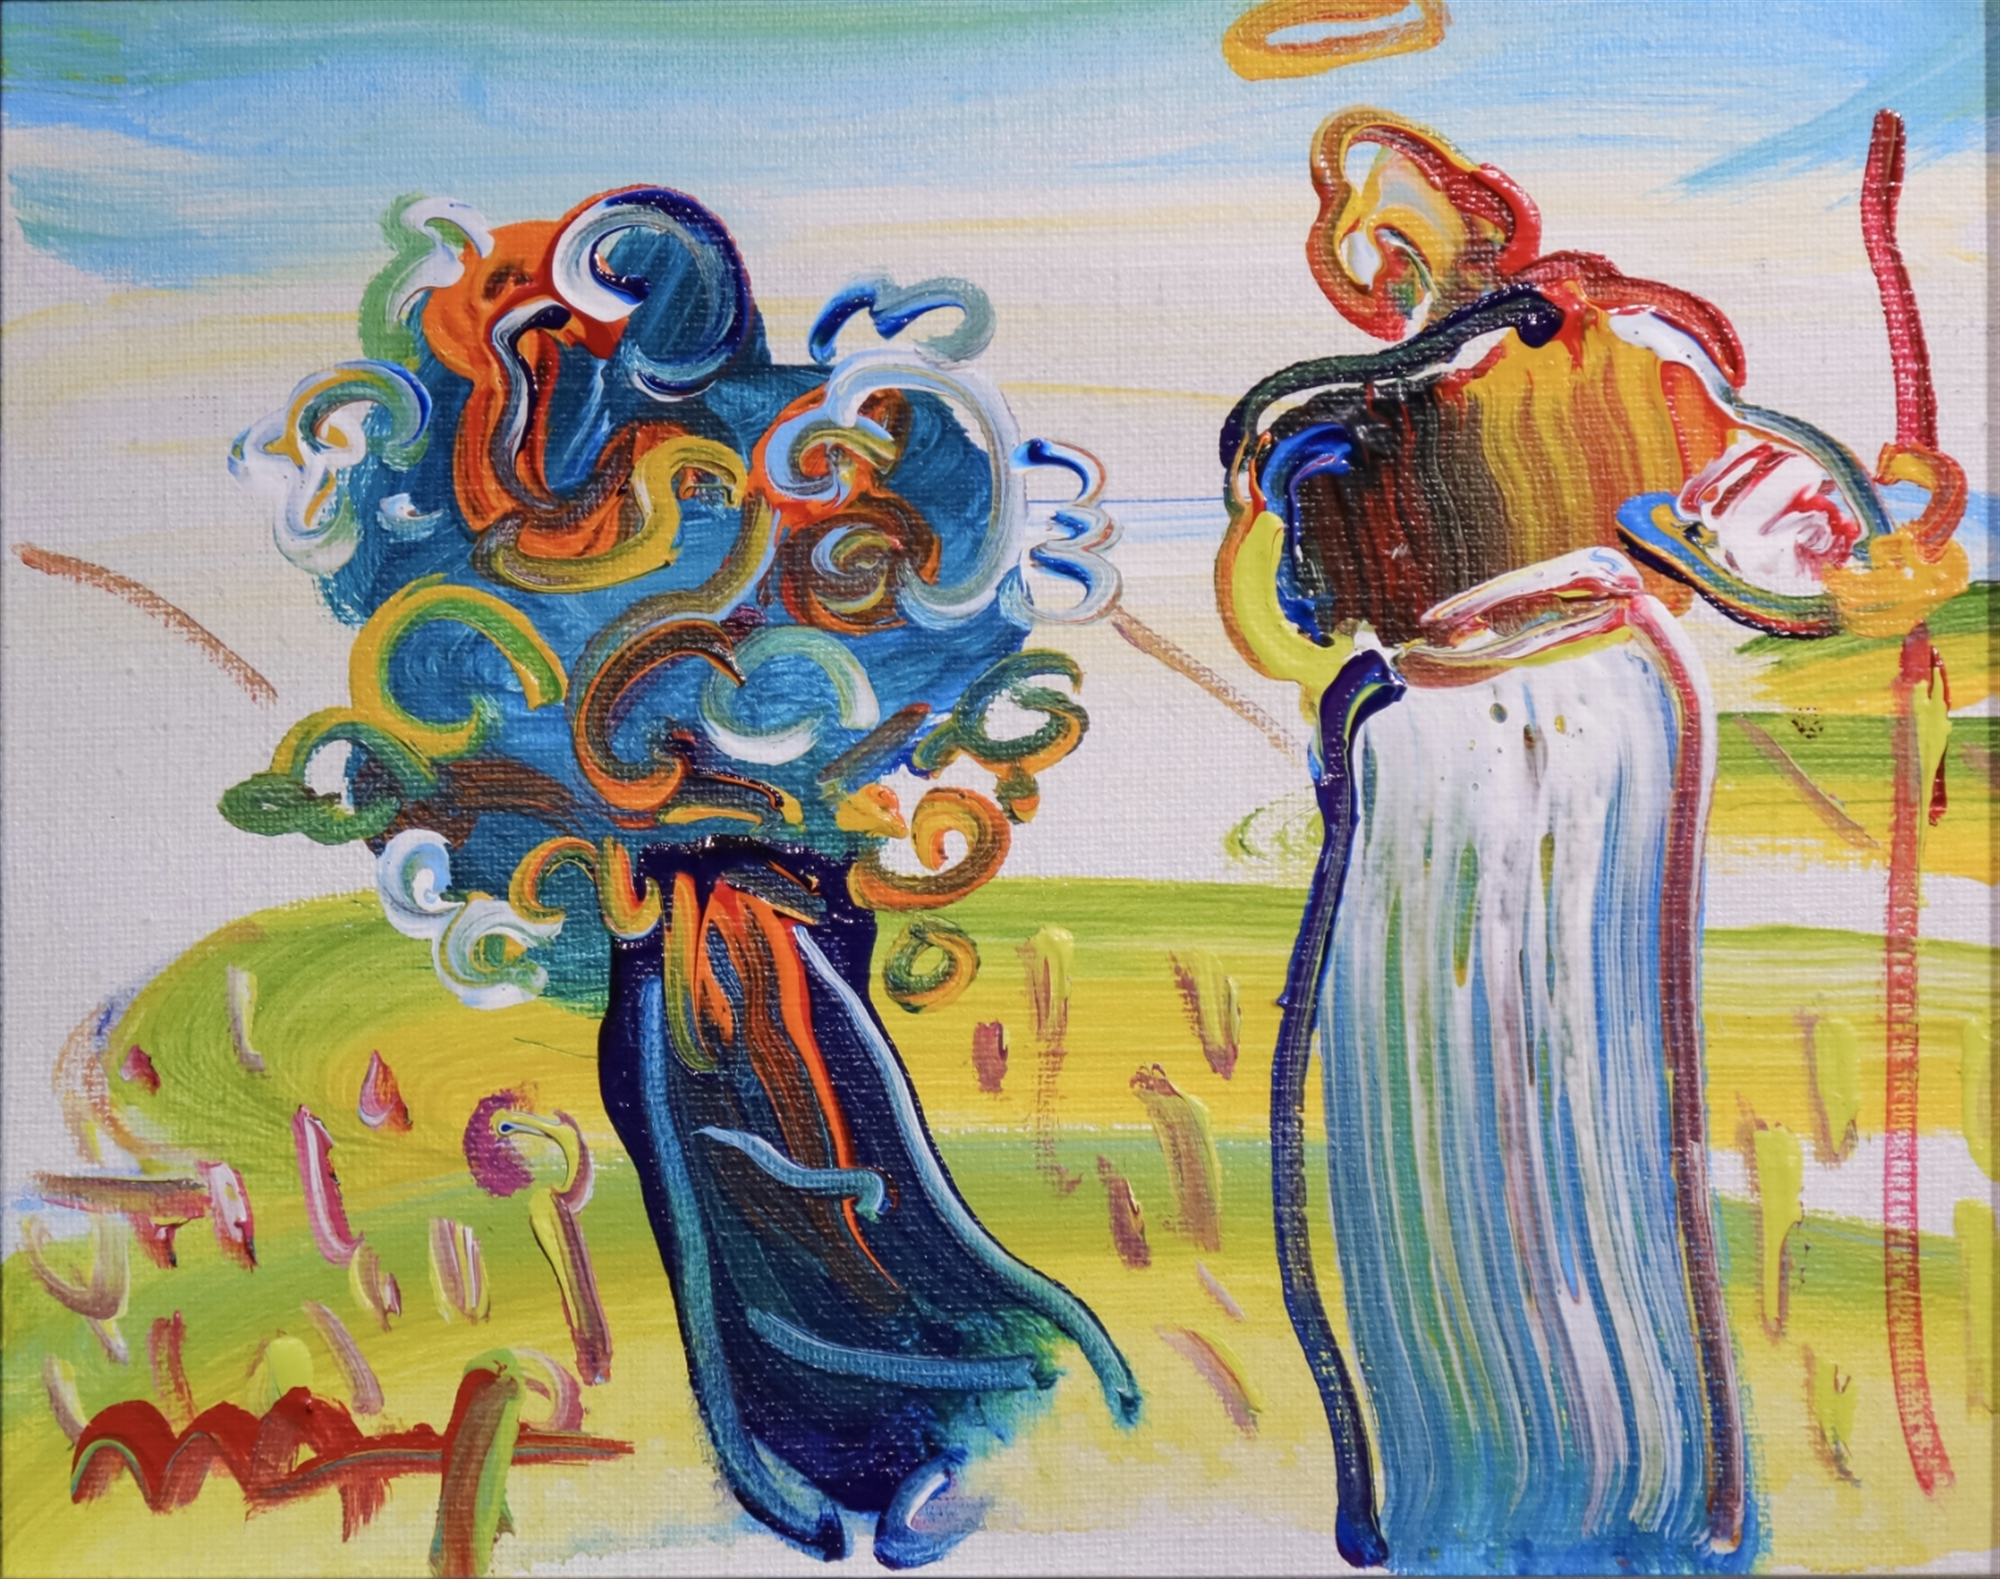 Sage with Cane and Tree by Peter Max